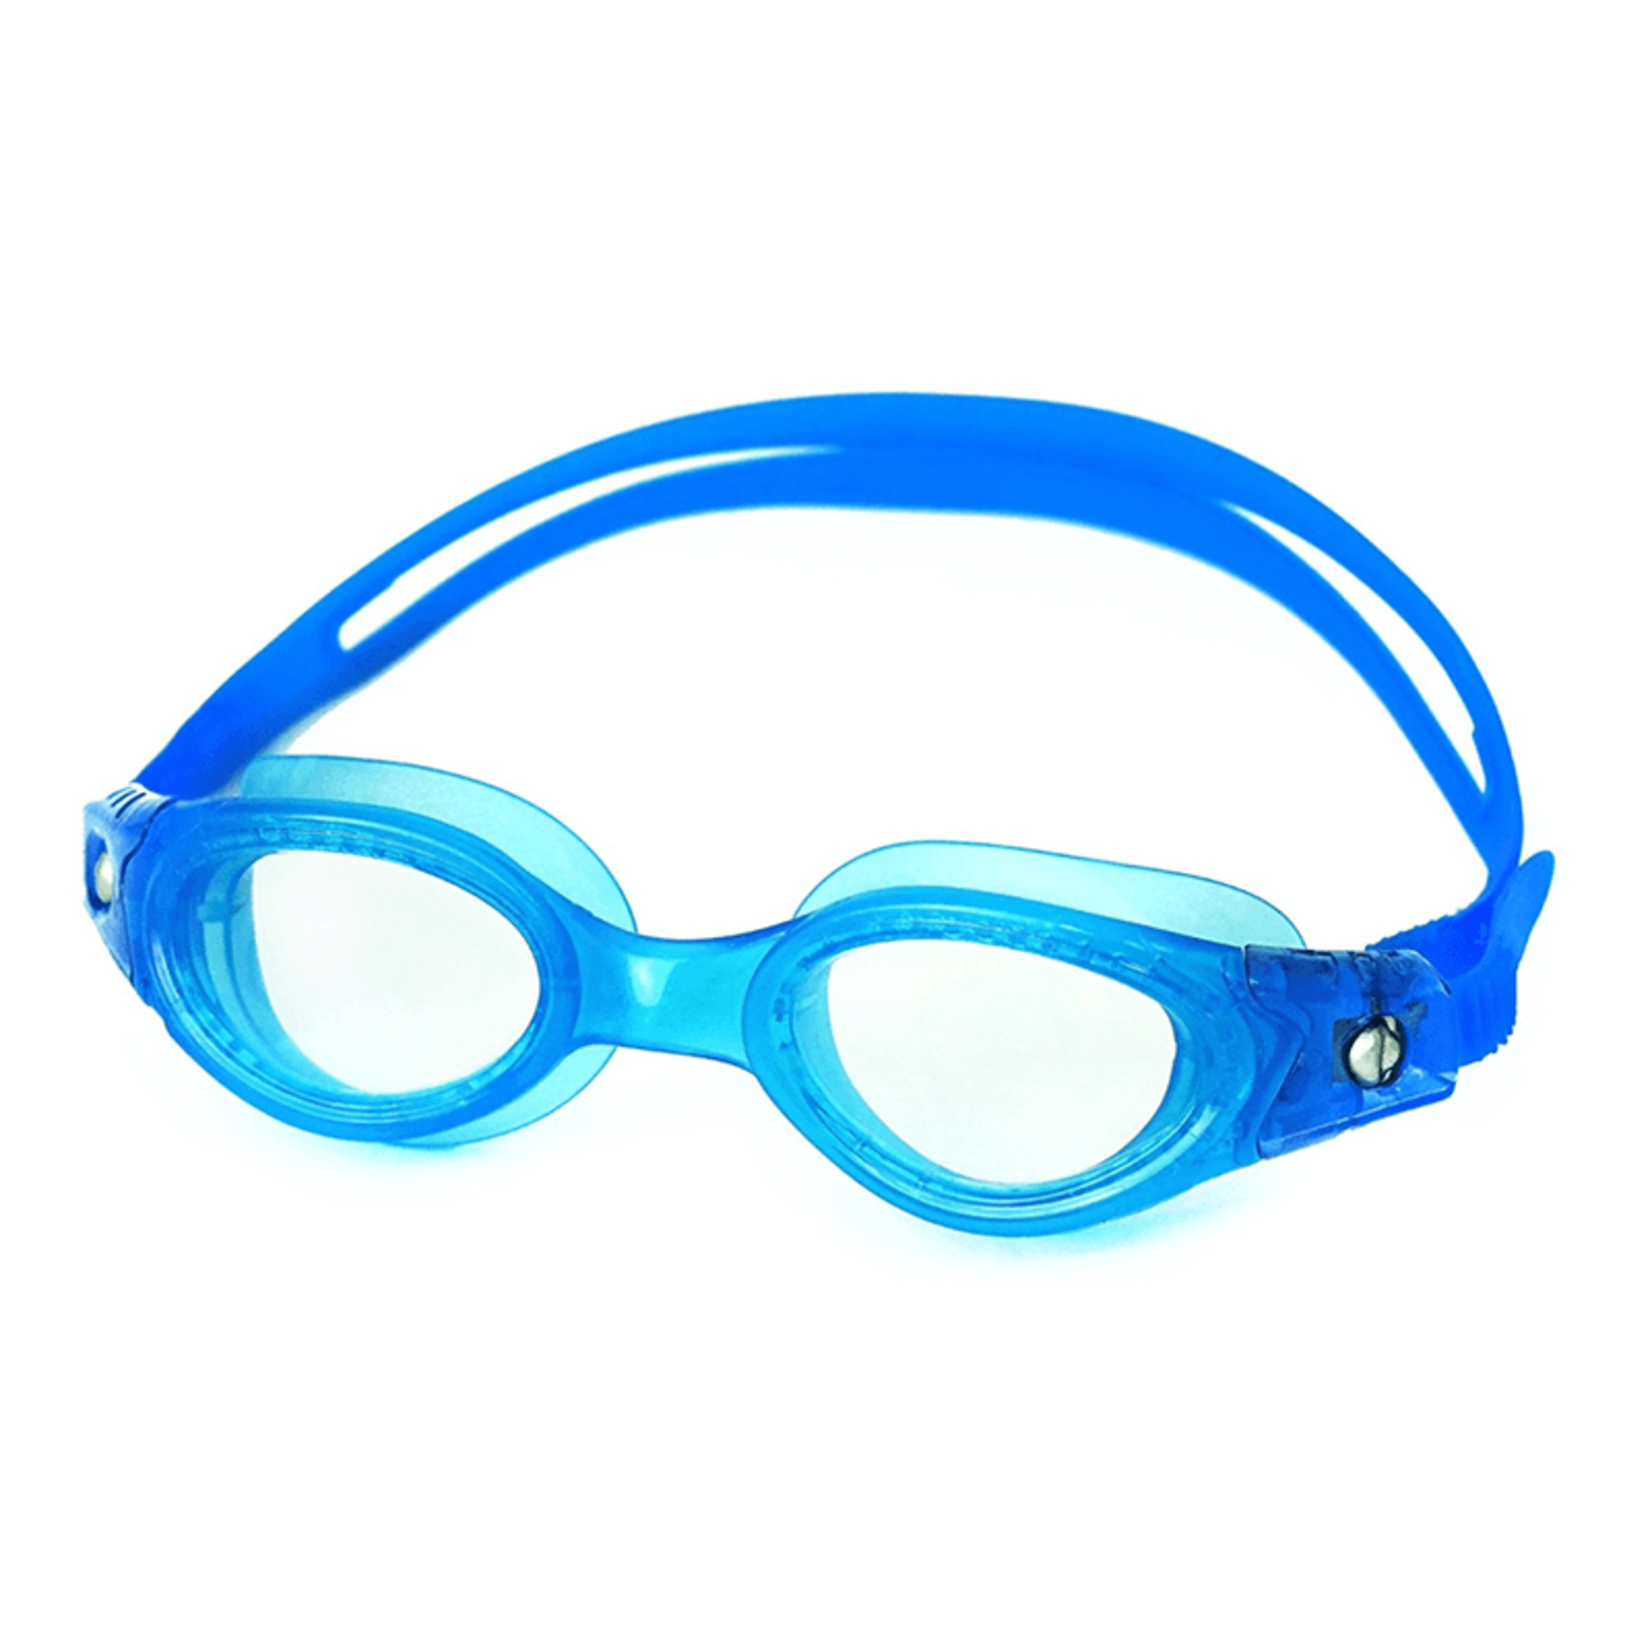 RACE ONE PACIFIC JR. KIDS GOGGLES